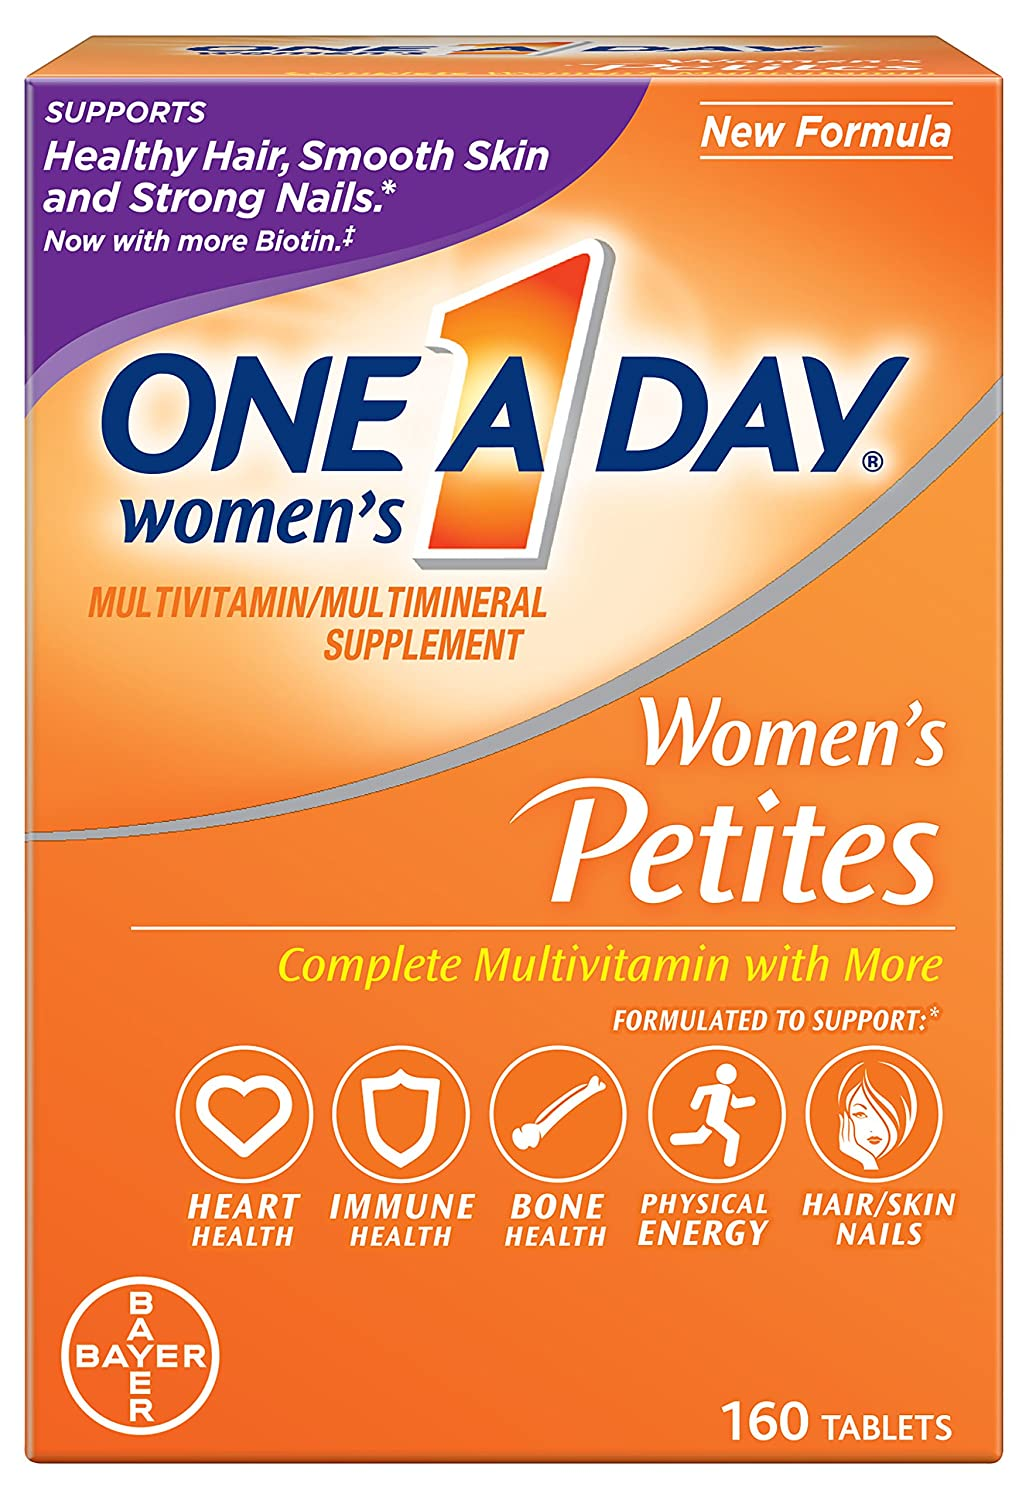 Vitamins for women - a must for health